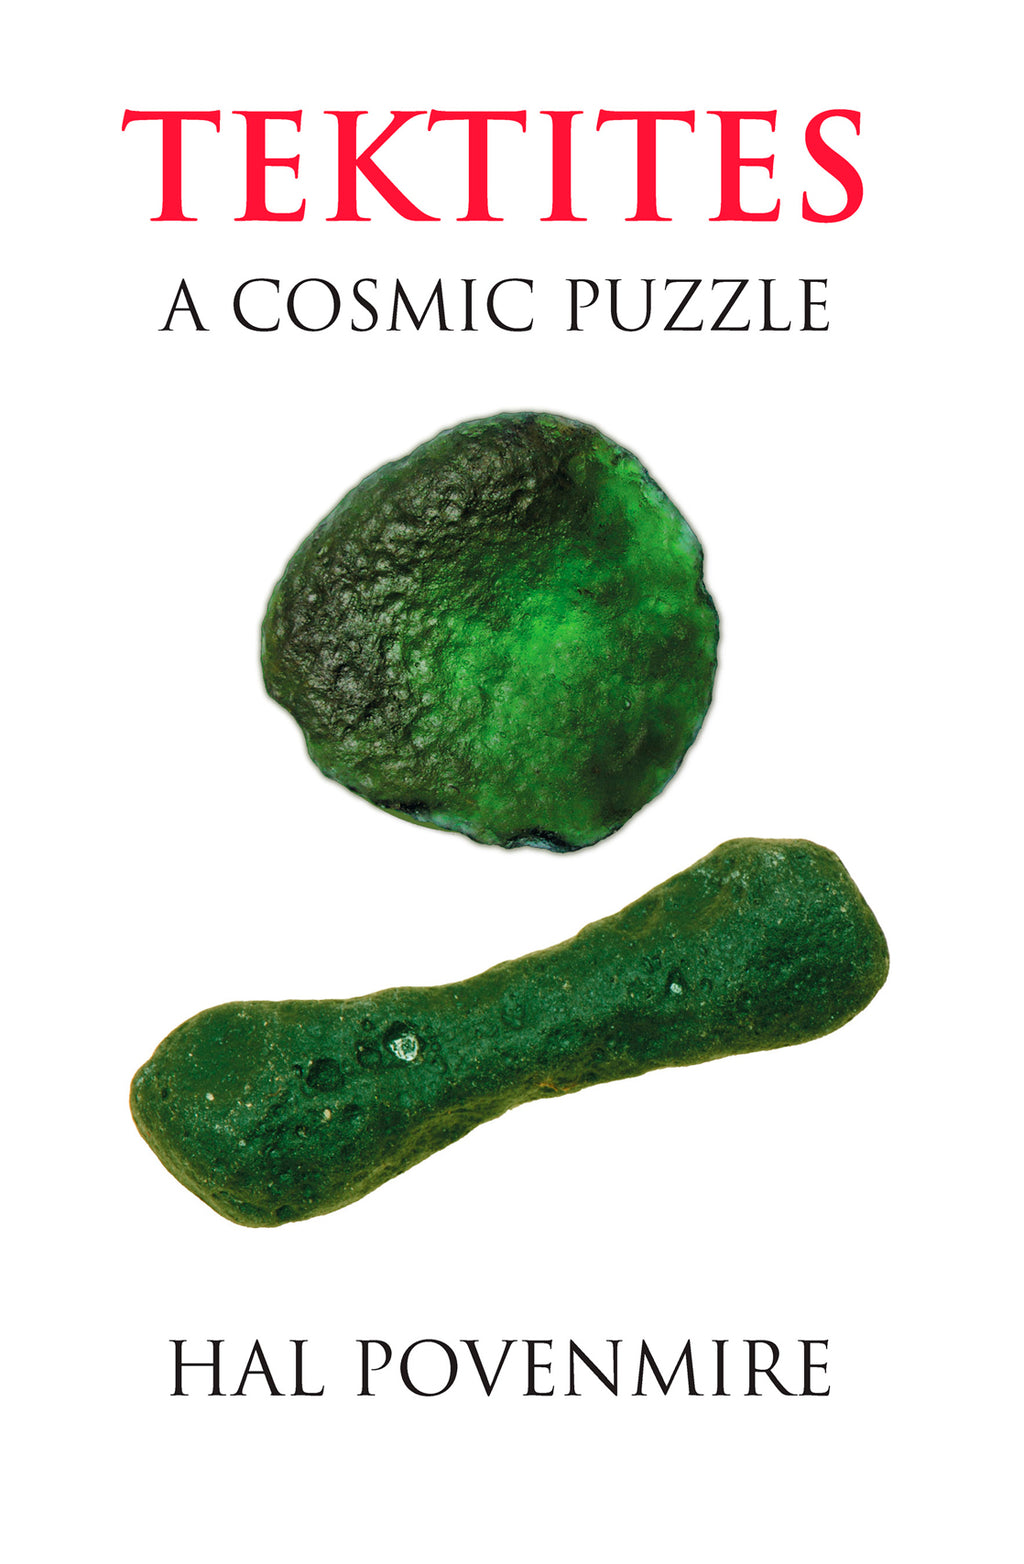 Tektites A Cosmic Puzzle, Hal Povenmire - Blue Note Publications, Inc